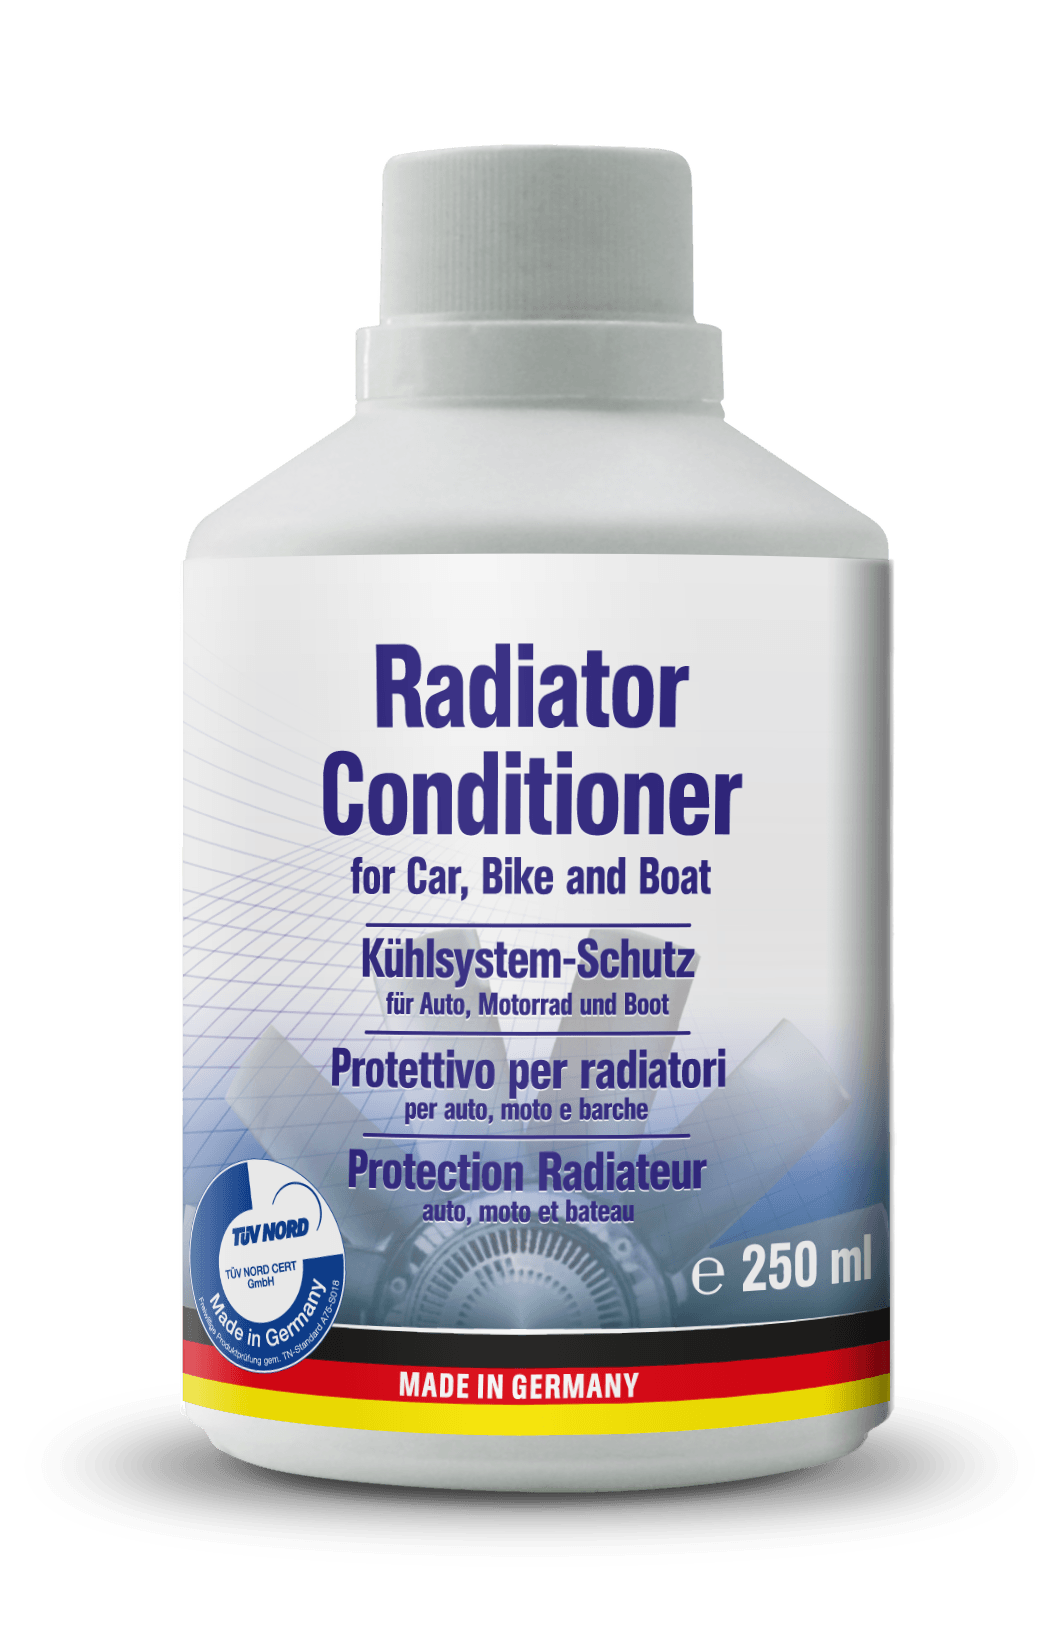 AUTOPROFI Radiator Conditioner - 250ml - Just European